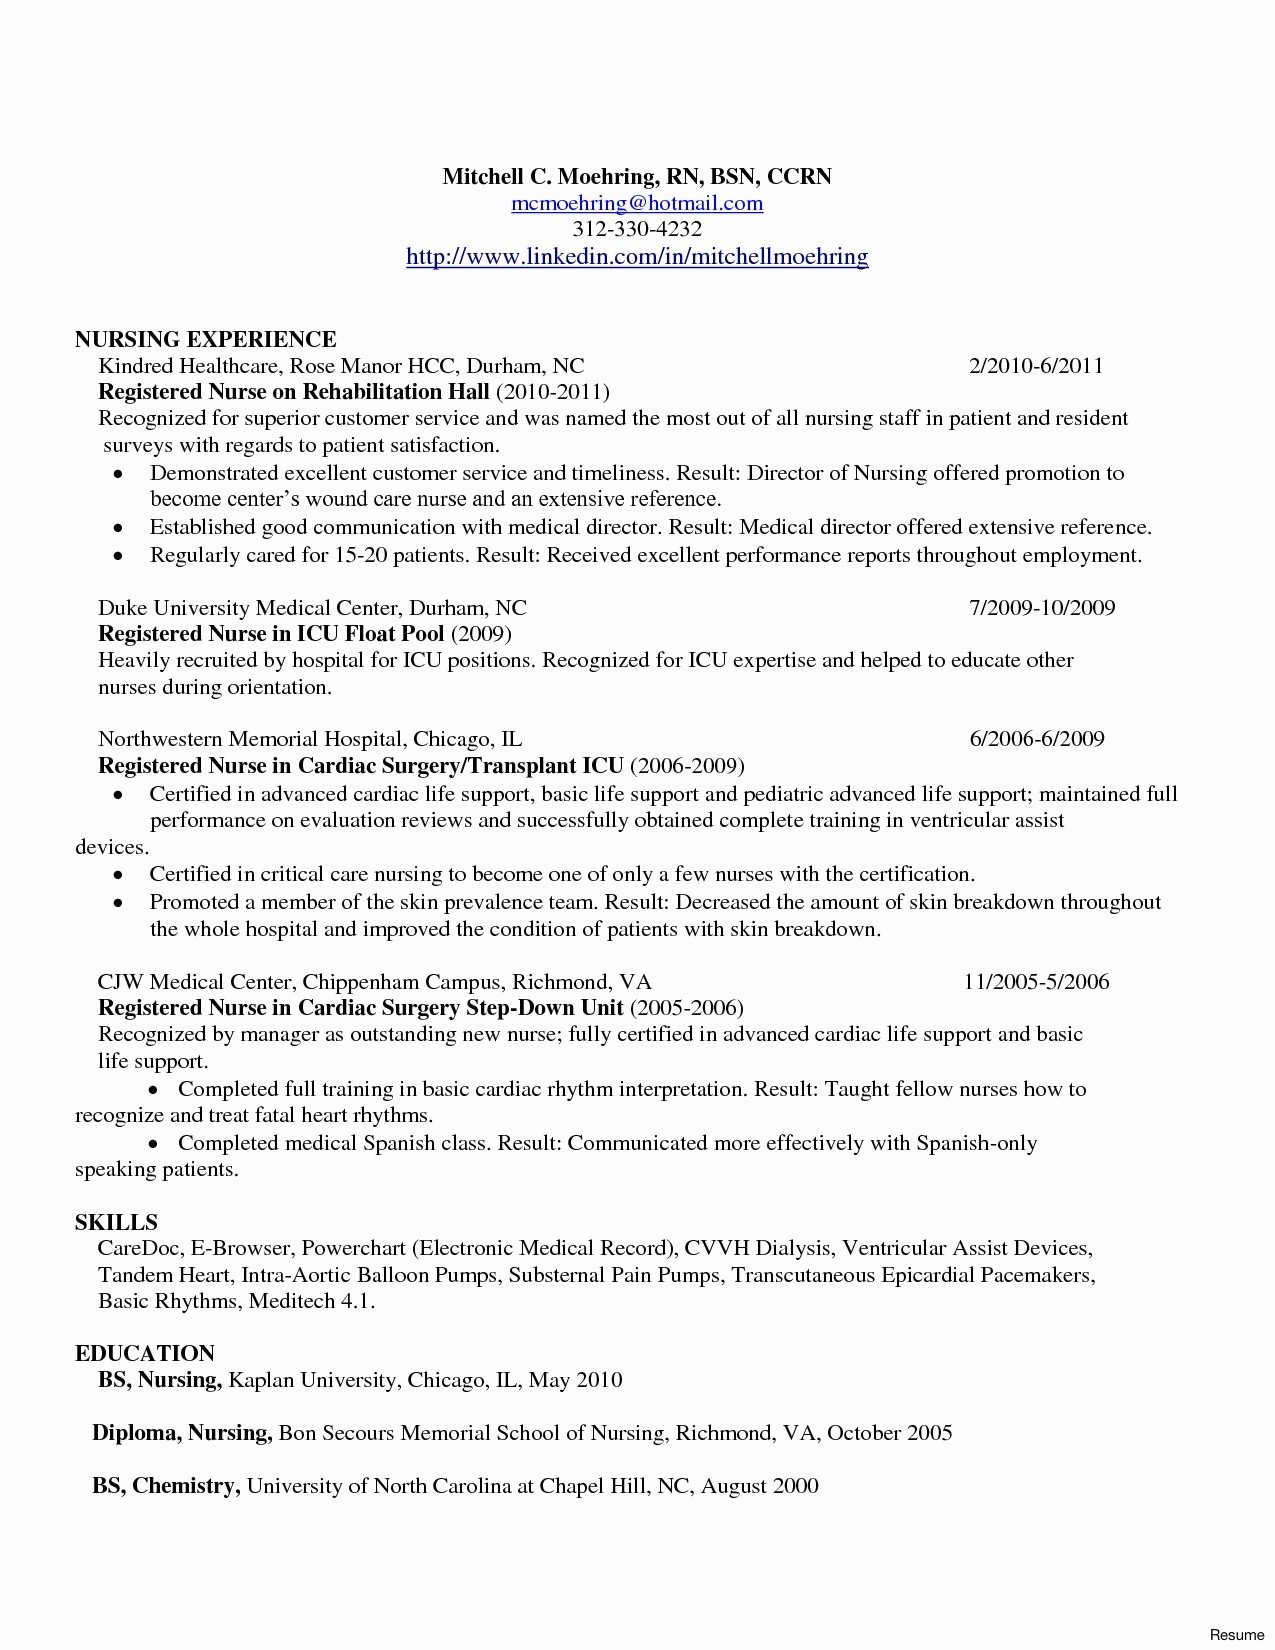 lifeguard responsibilities for resume example-Rn Resume Examples Nursing Home Elegant Elegant New Nurse Resume Awesome Nurse Resume 0d Wallpapers 42 2-m